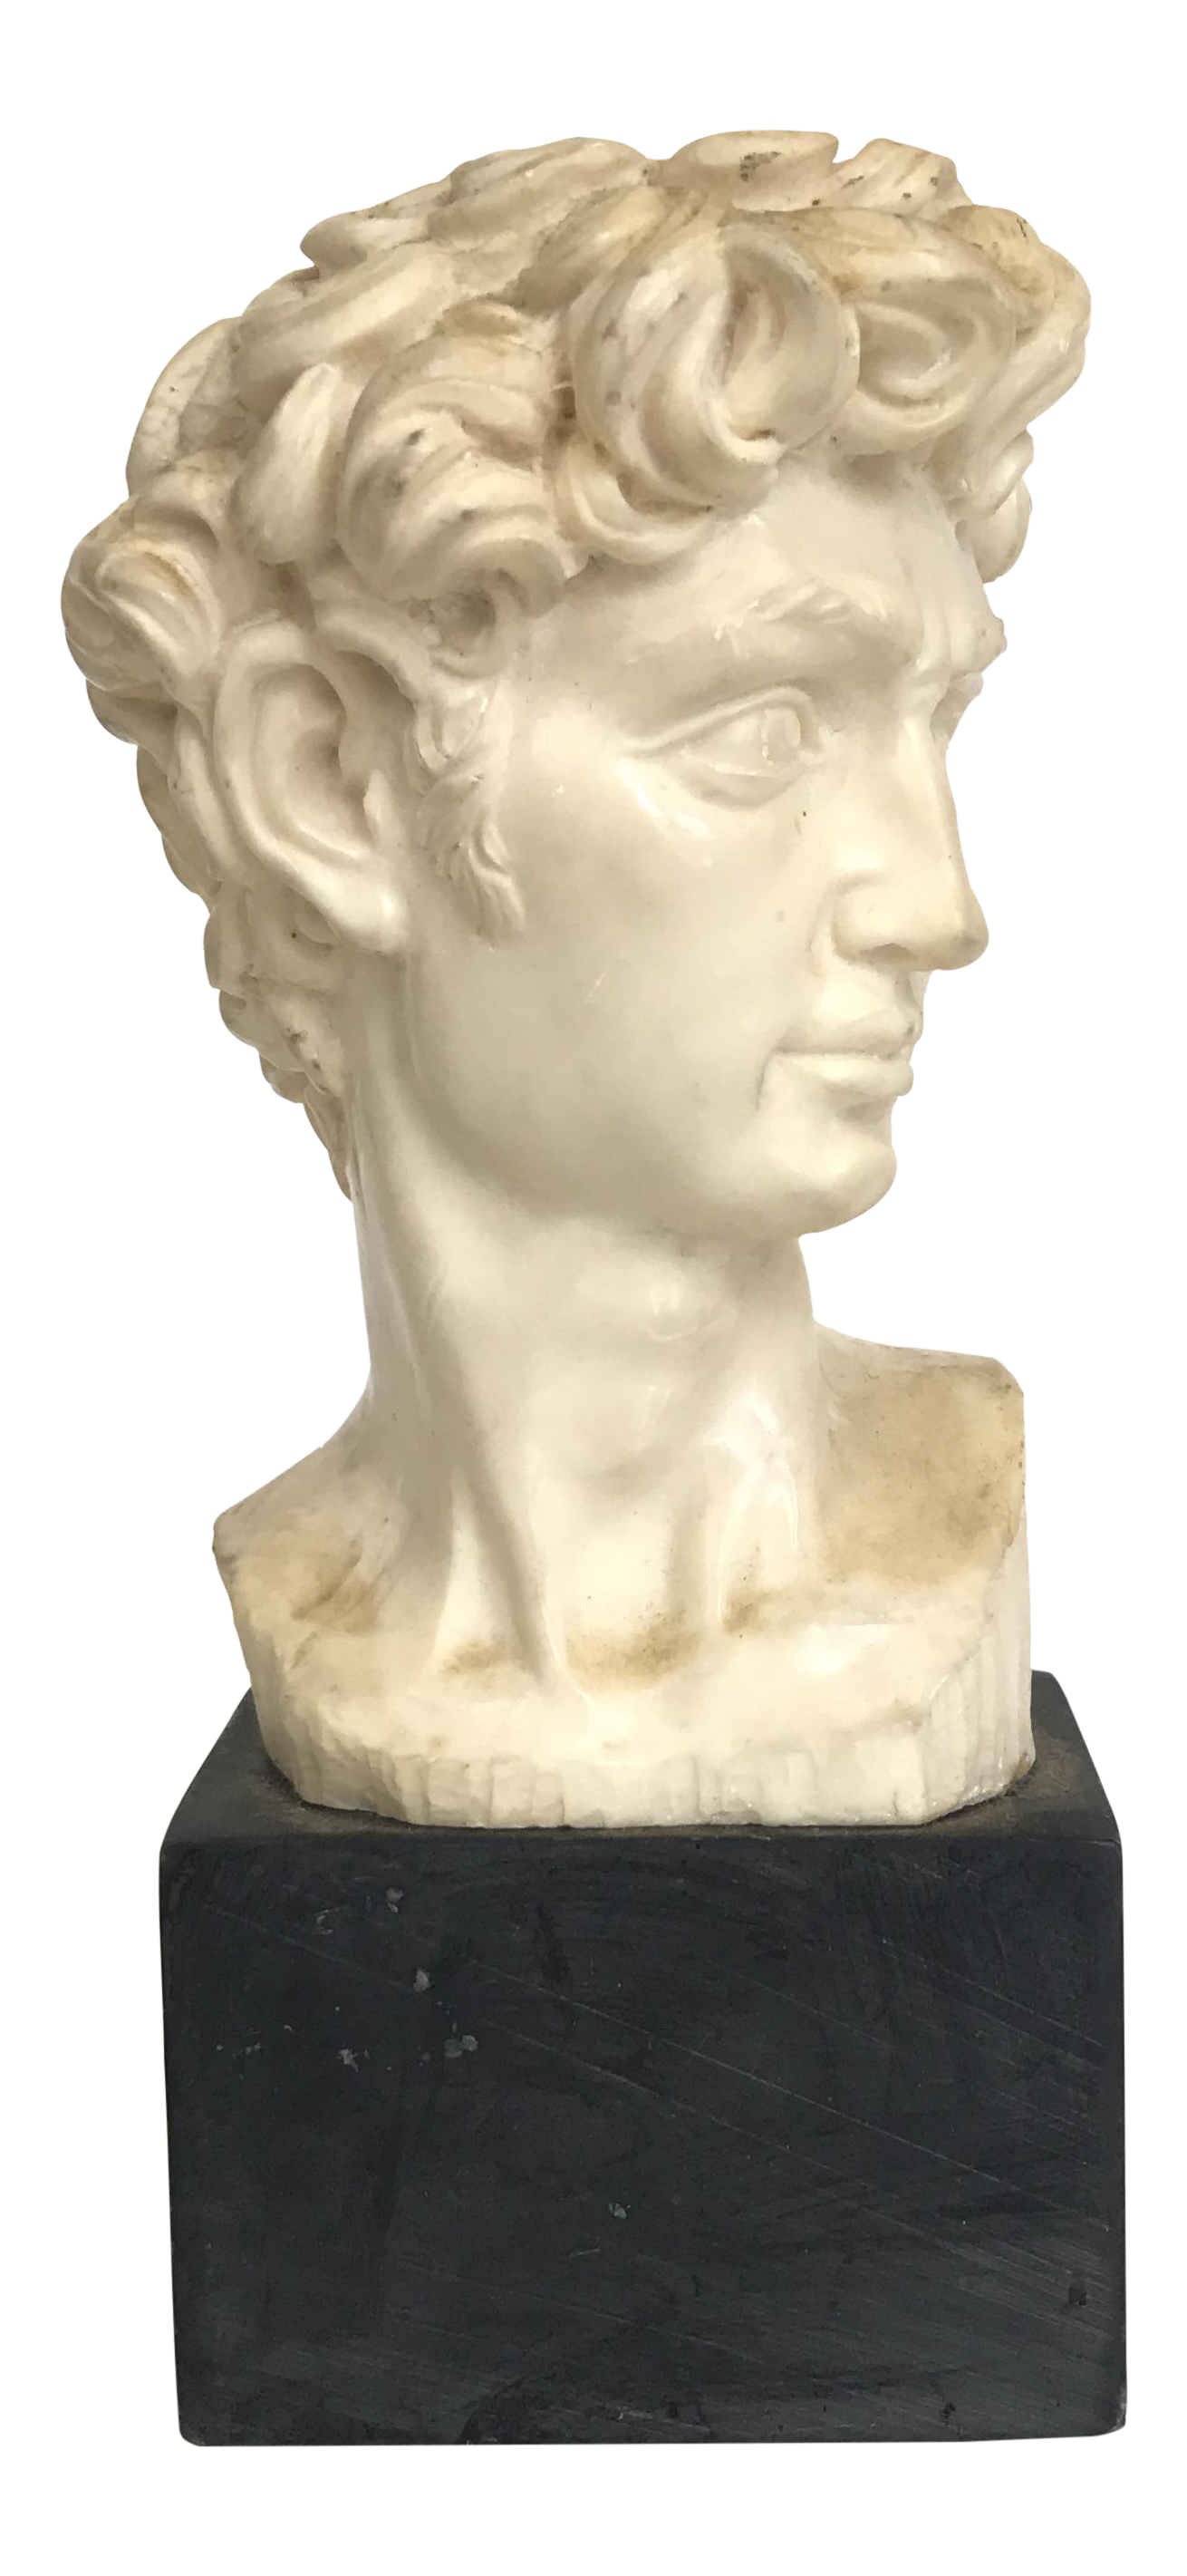 Sculptural drawing david statue face. Michelangelo head of a